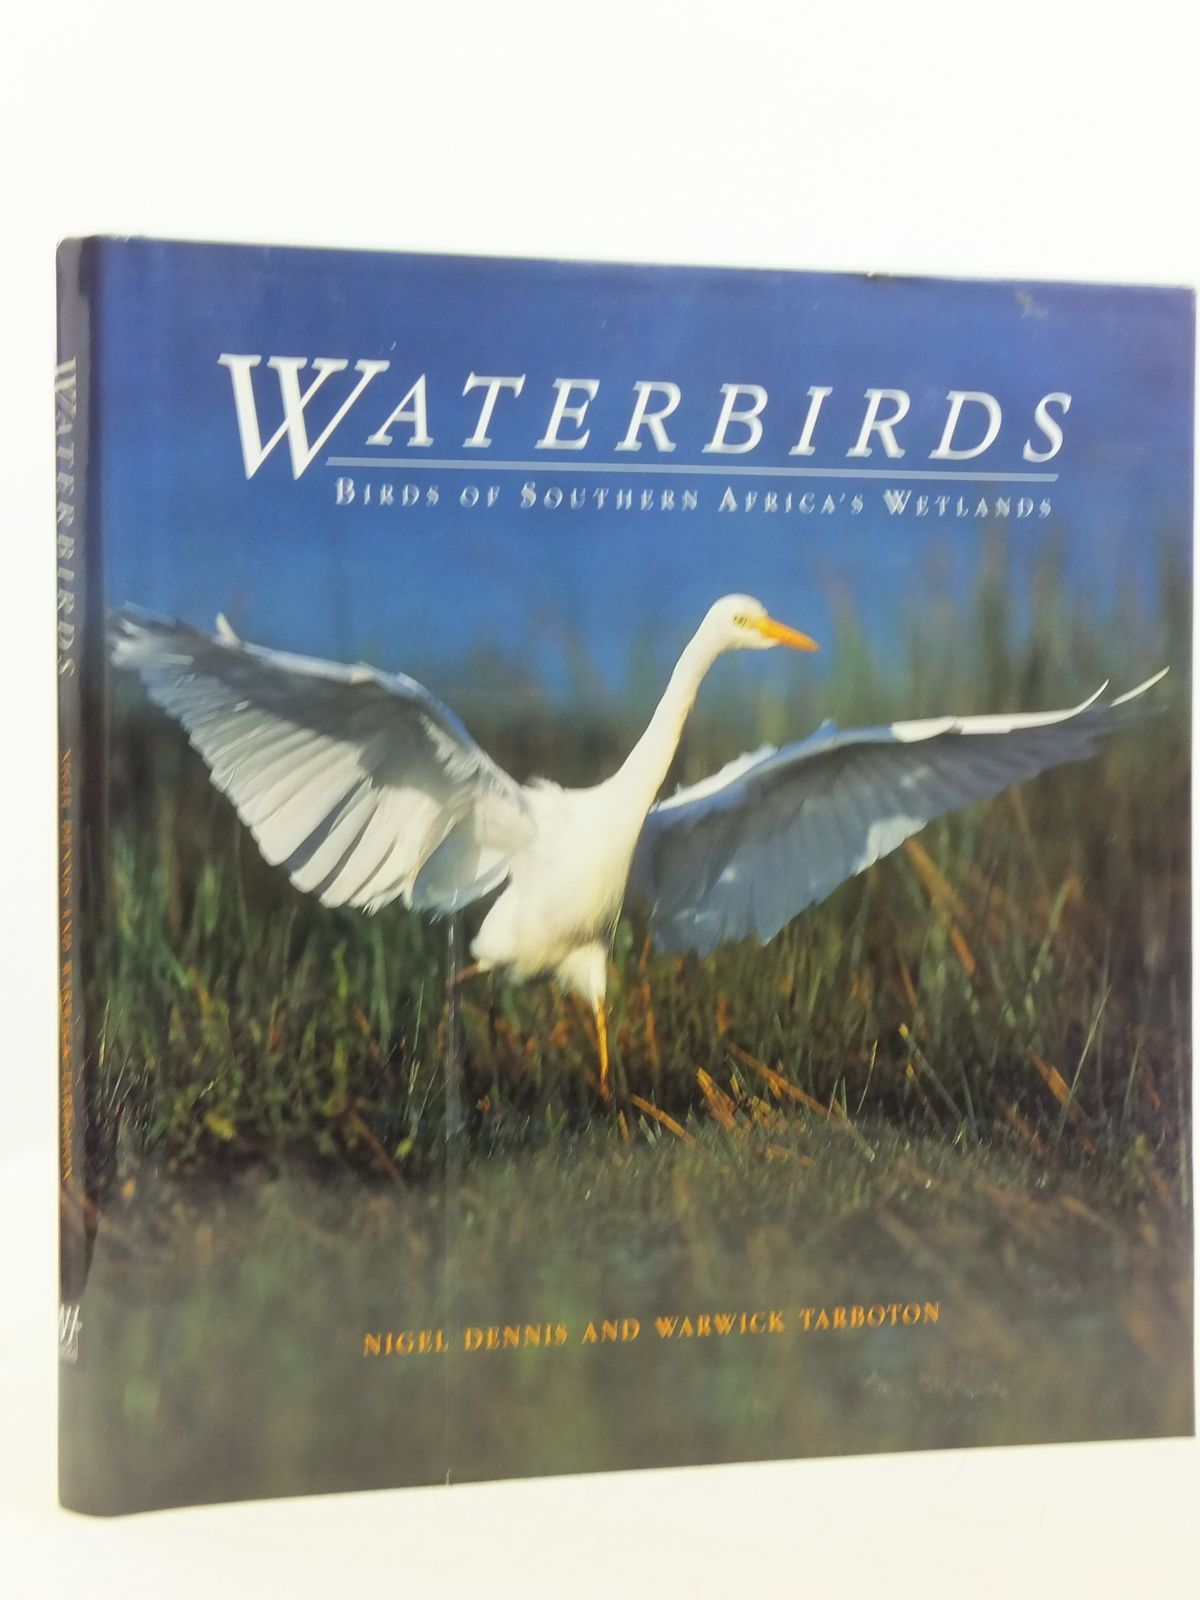 Photo of WATERBIRDS BIRDS OF SOUTHERN AFRICA'S WETLANDS written by Tarboton, Warwick<br />Dennis, Nigel published by New Holland (STOCK CODE: 2119861)  for sale by Stella & Rose's Books